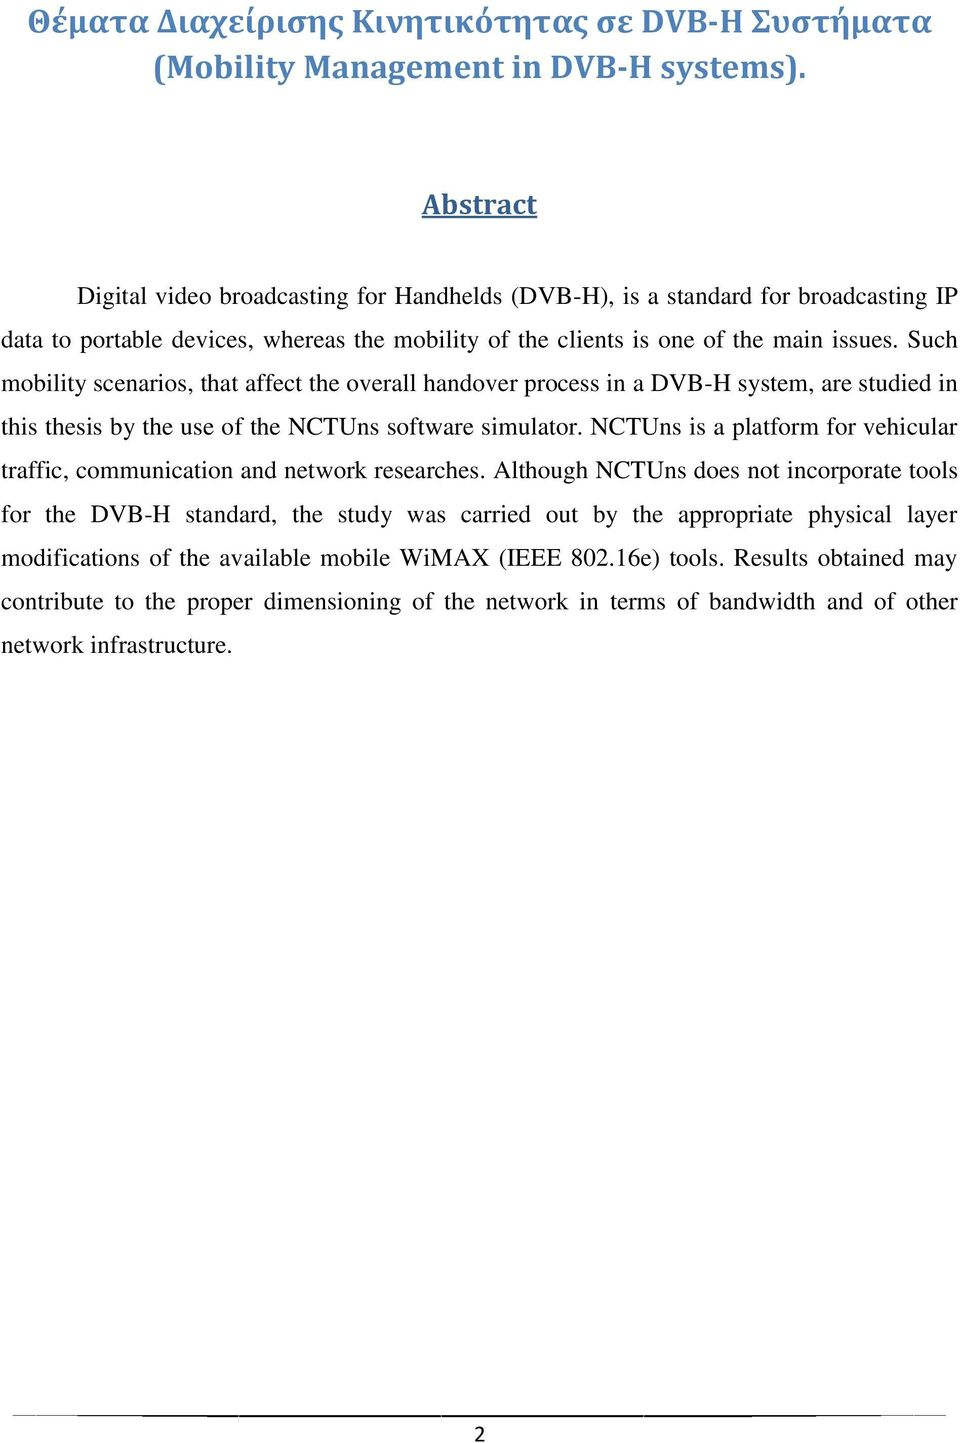 Such mobility scenarios, that affect the overall handover process in a DVB-H system, are studied in this thesis by the use of the NCTUns software simulator.